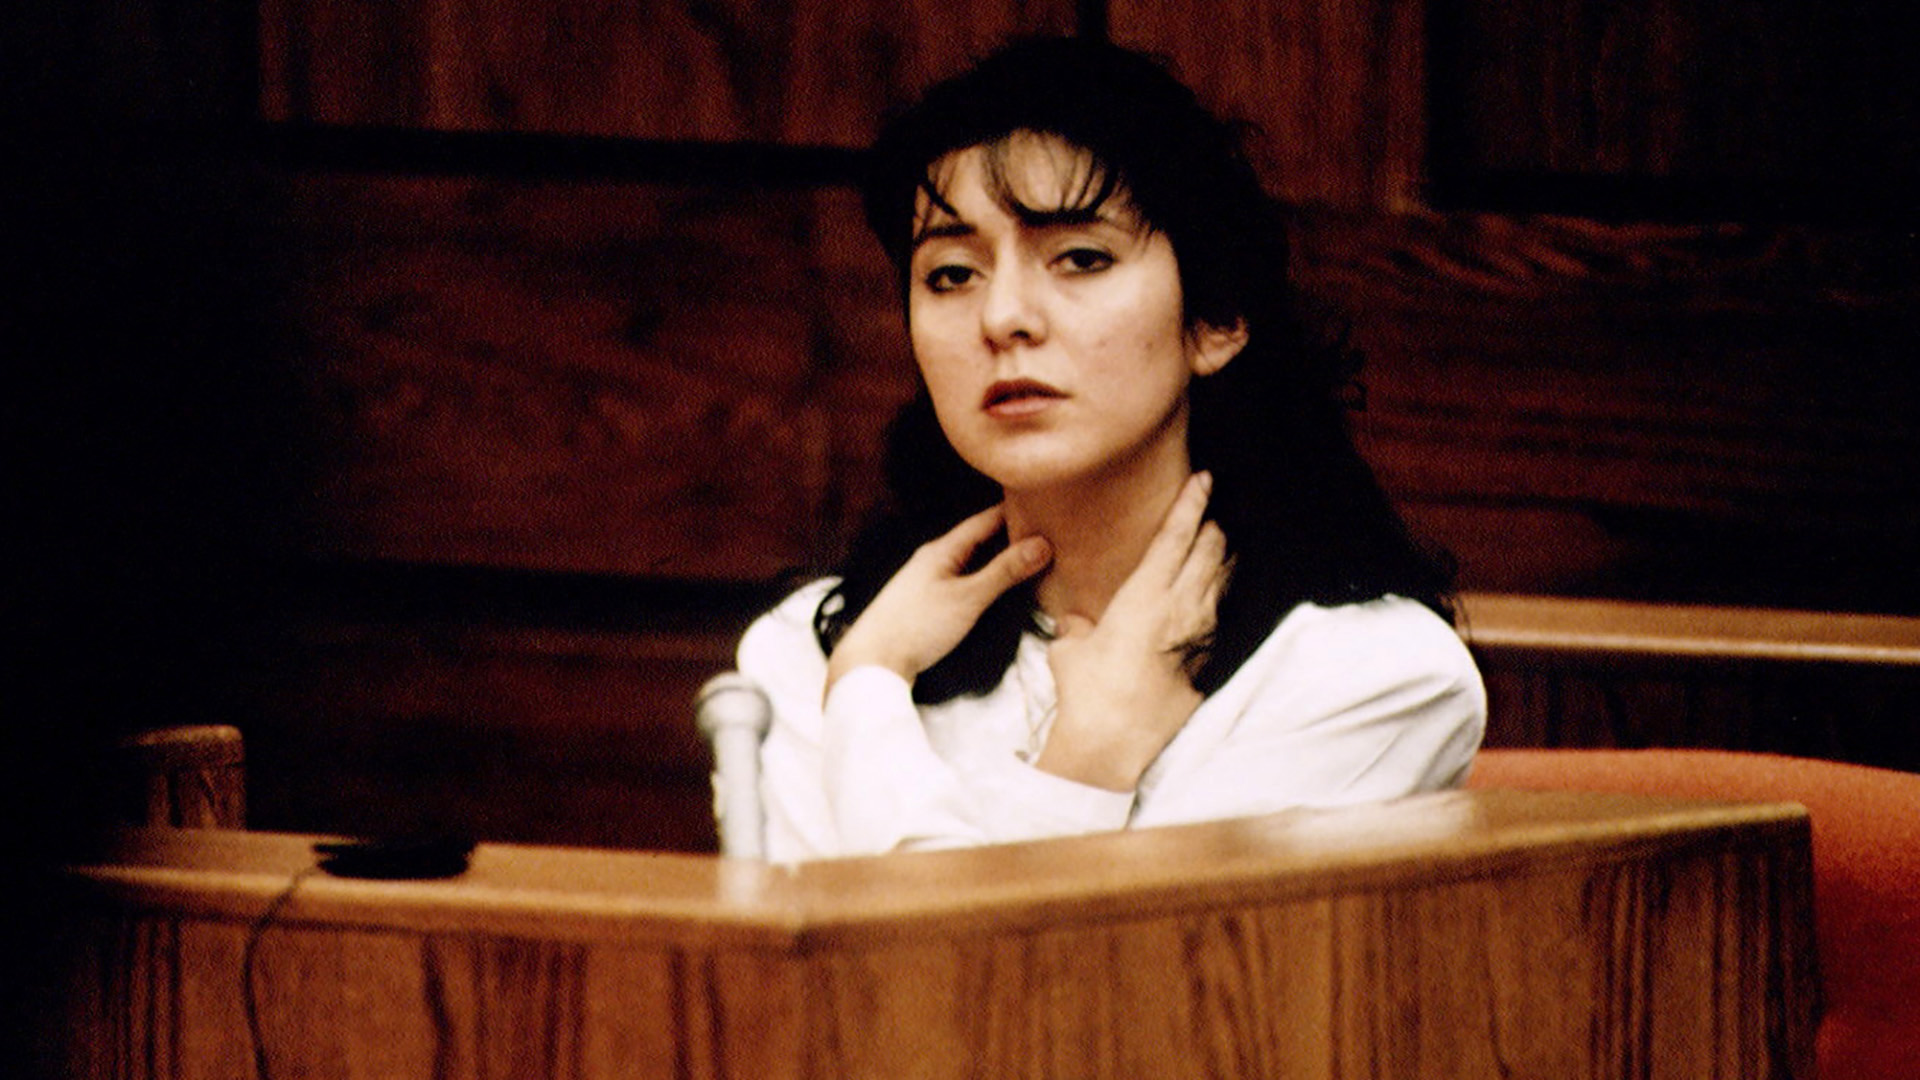 Lorena Bobbitt and Others: What Happens When Abused Women Snap